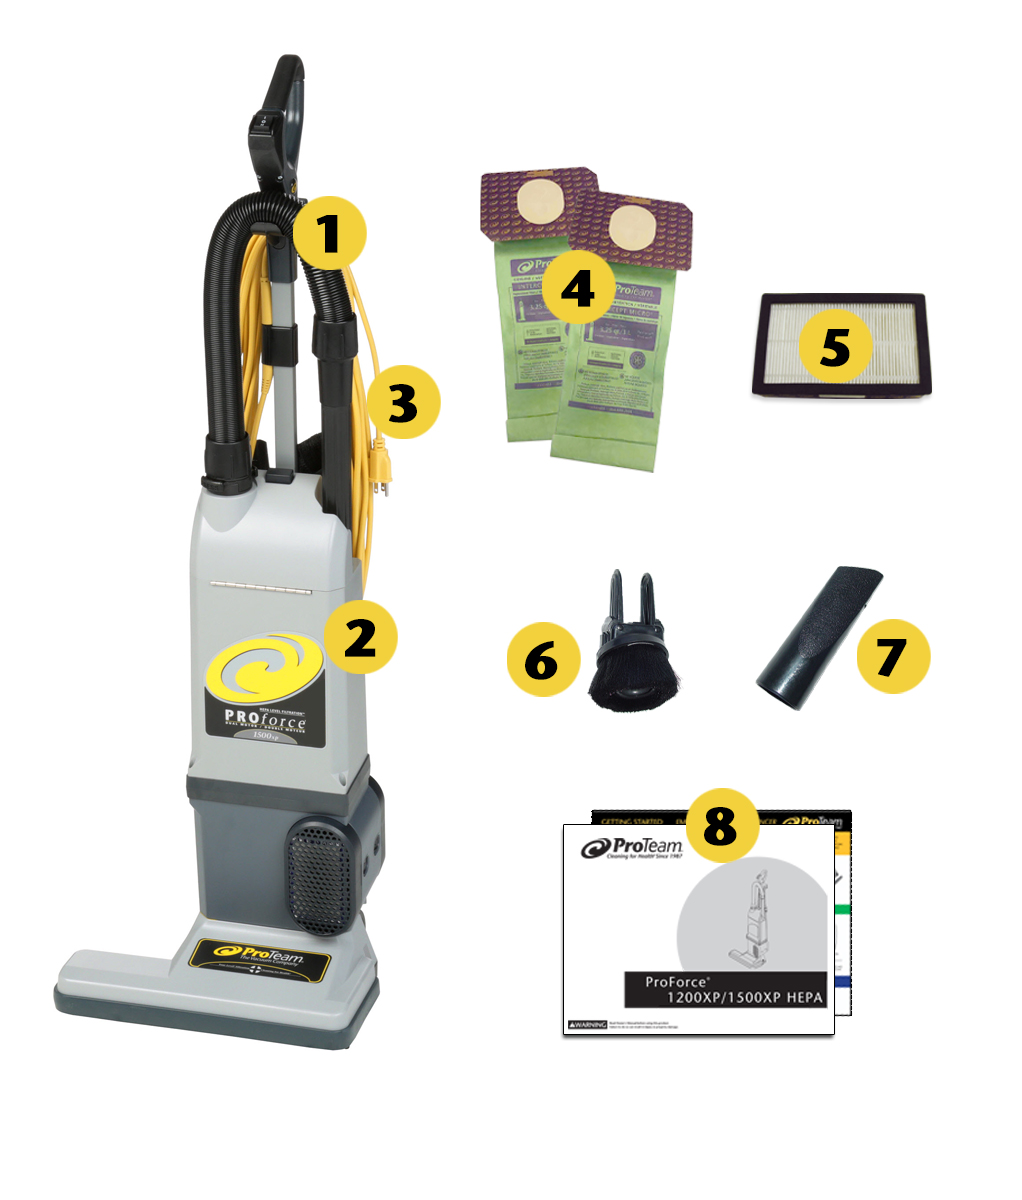 Image of what is included in the box of ProTeam ProForce 1500XP Upright Vacuum